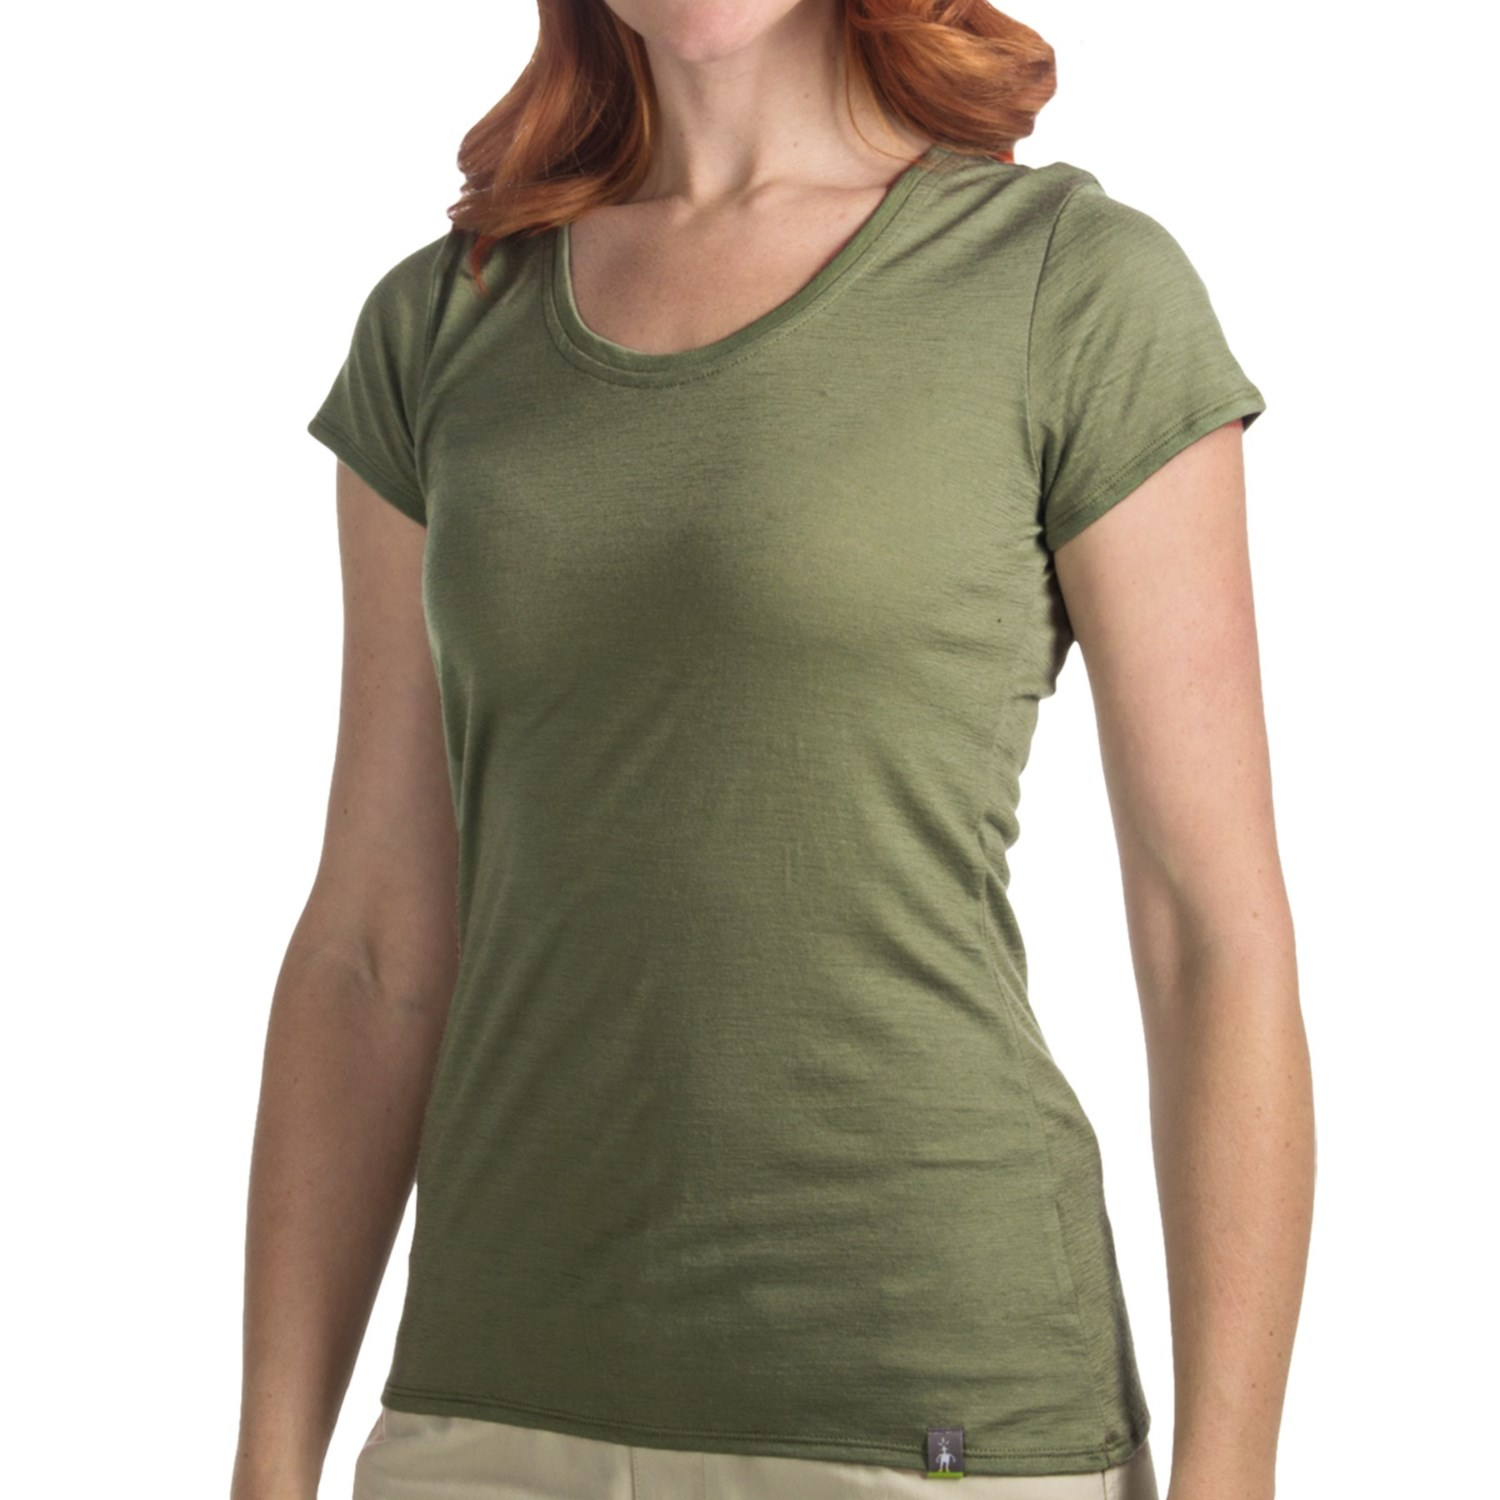 Smartwool u neck t shirt for women 6331w for Merino wool shirt womens